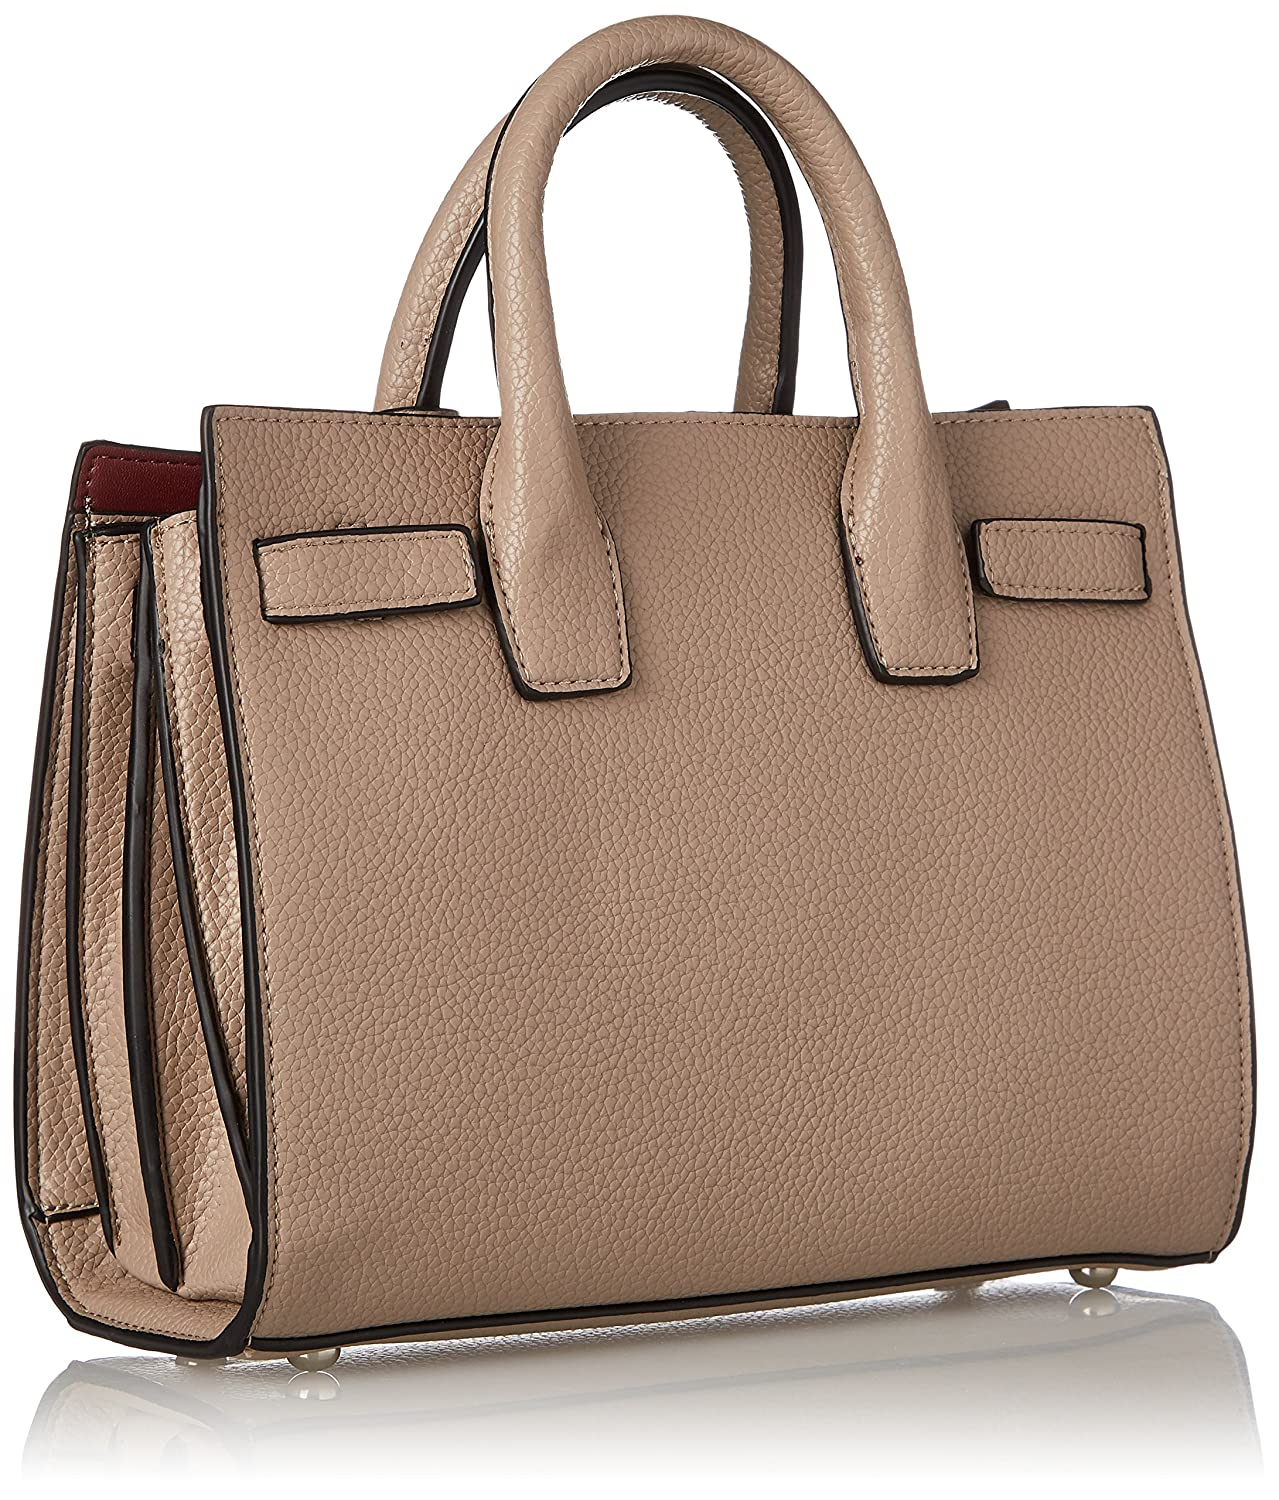 Bag Cogollos, Womens Top-Handle Bag, Beige (Taupe), 12x21x26 cm (W x H L) Silvian Heach